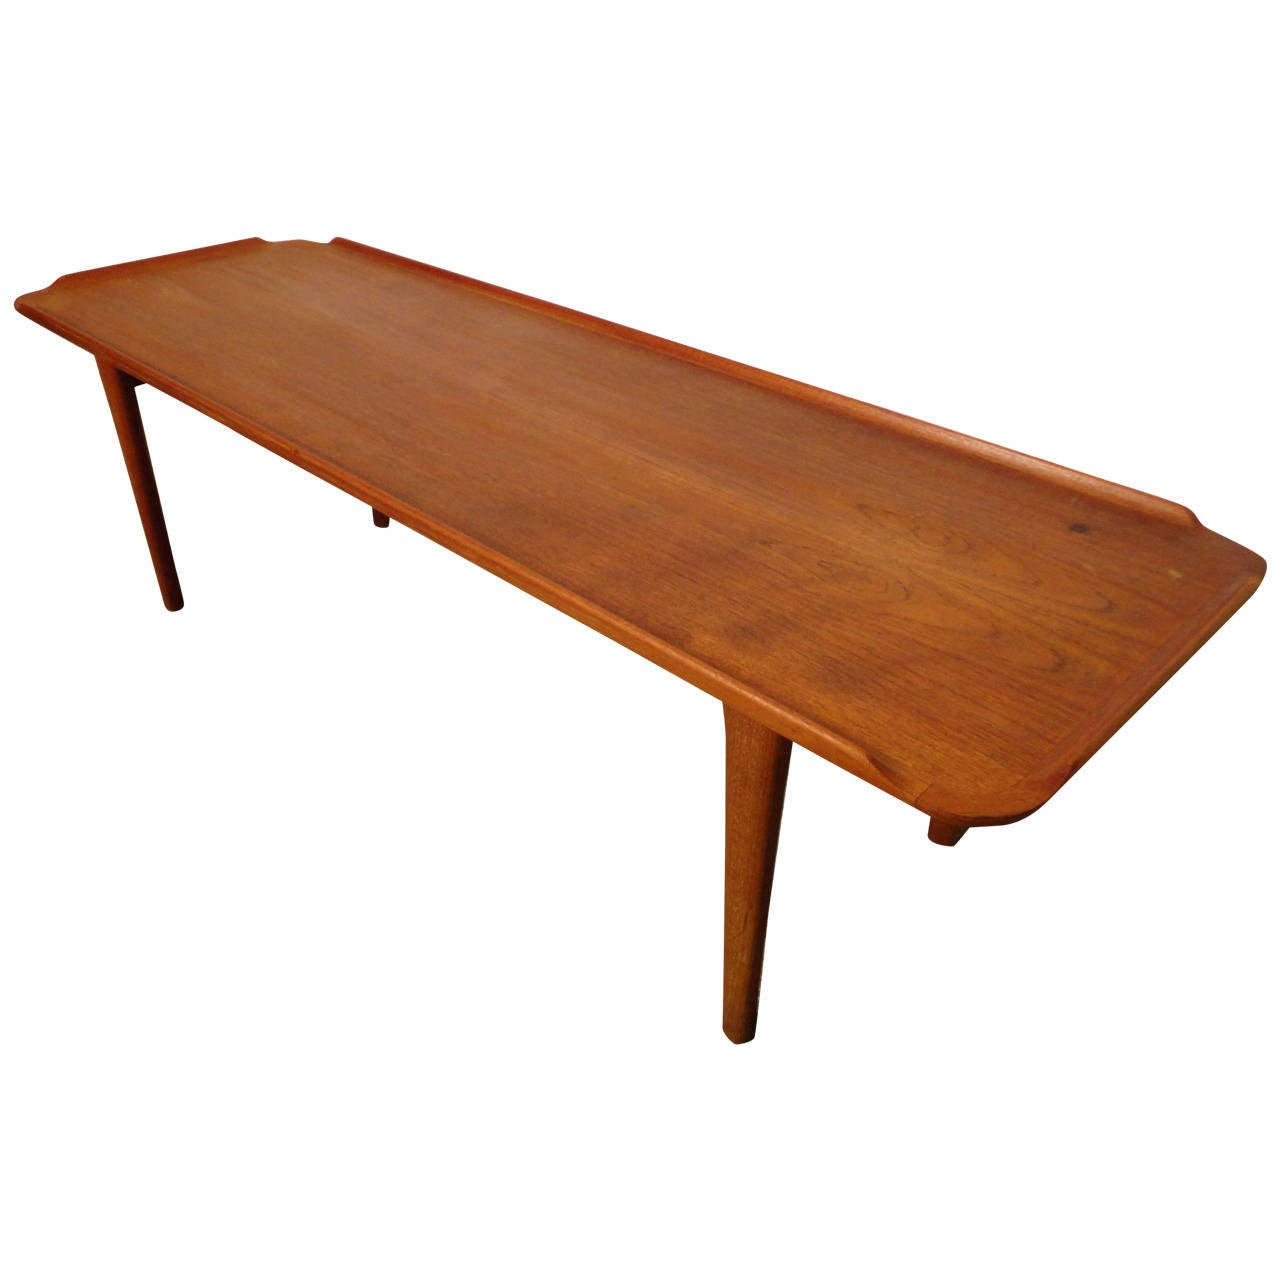 Mid century modern poul jensen danish coffee table at 1stdibs for Mid century modern coffee table